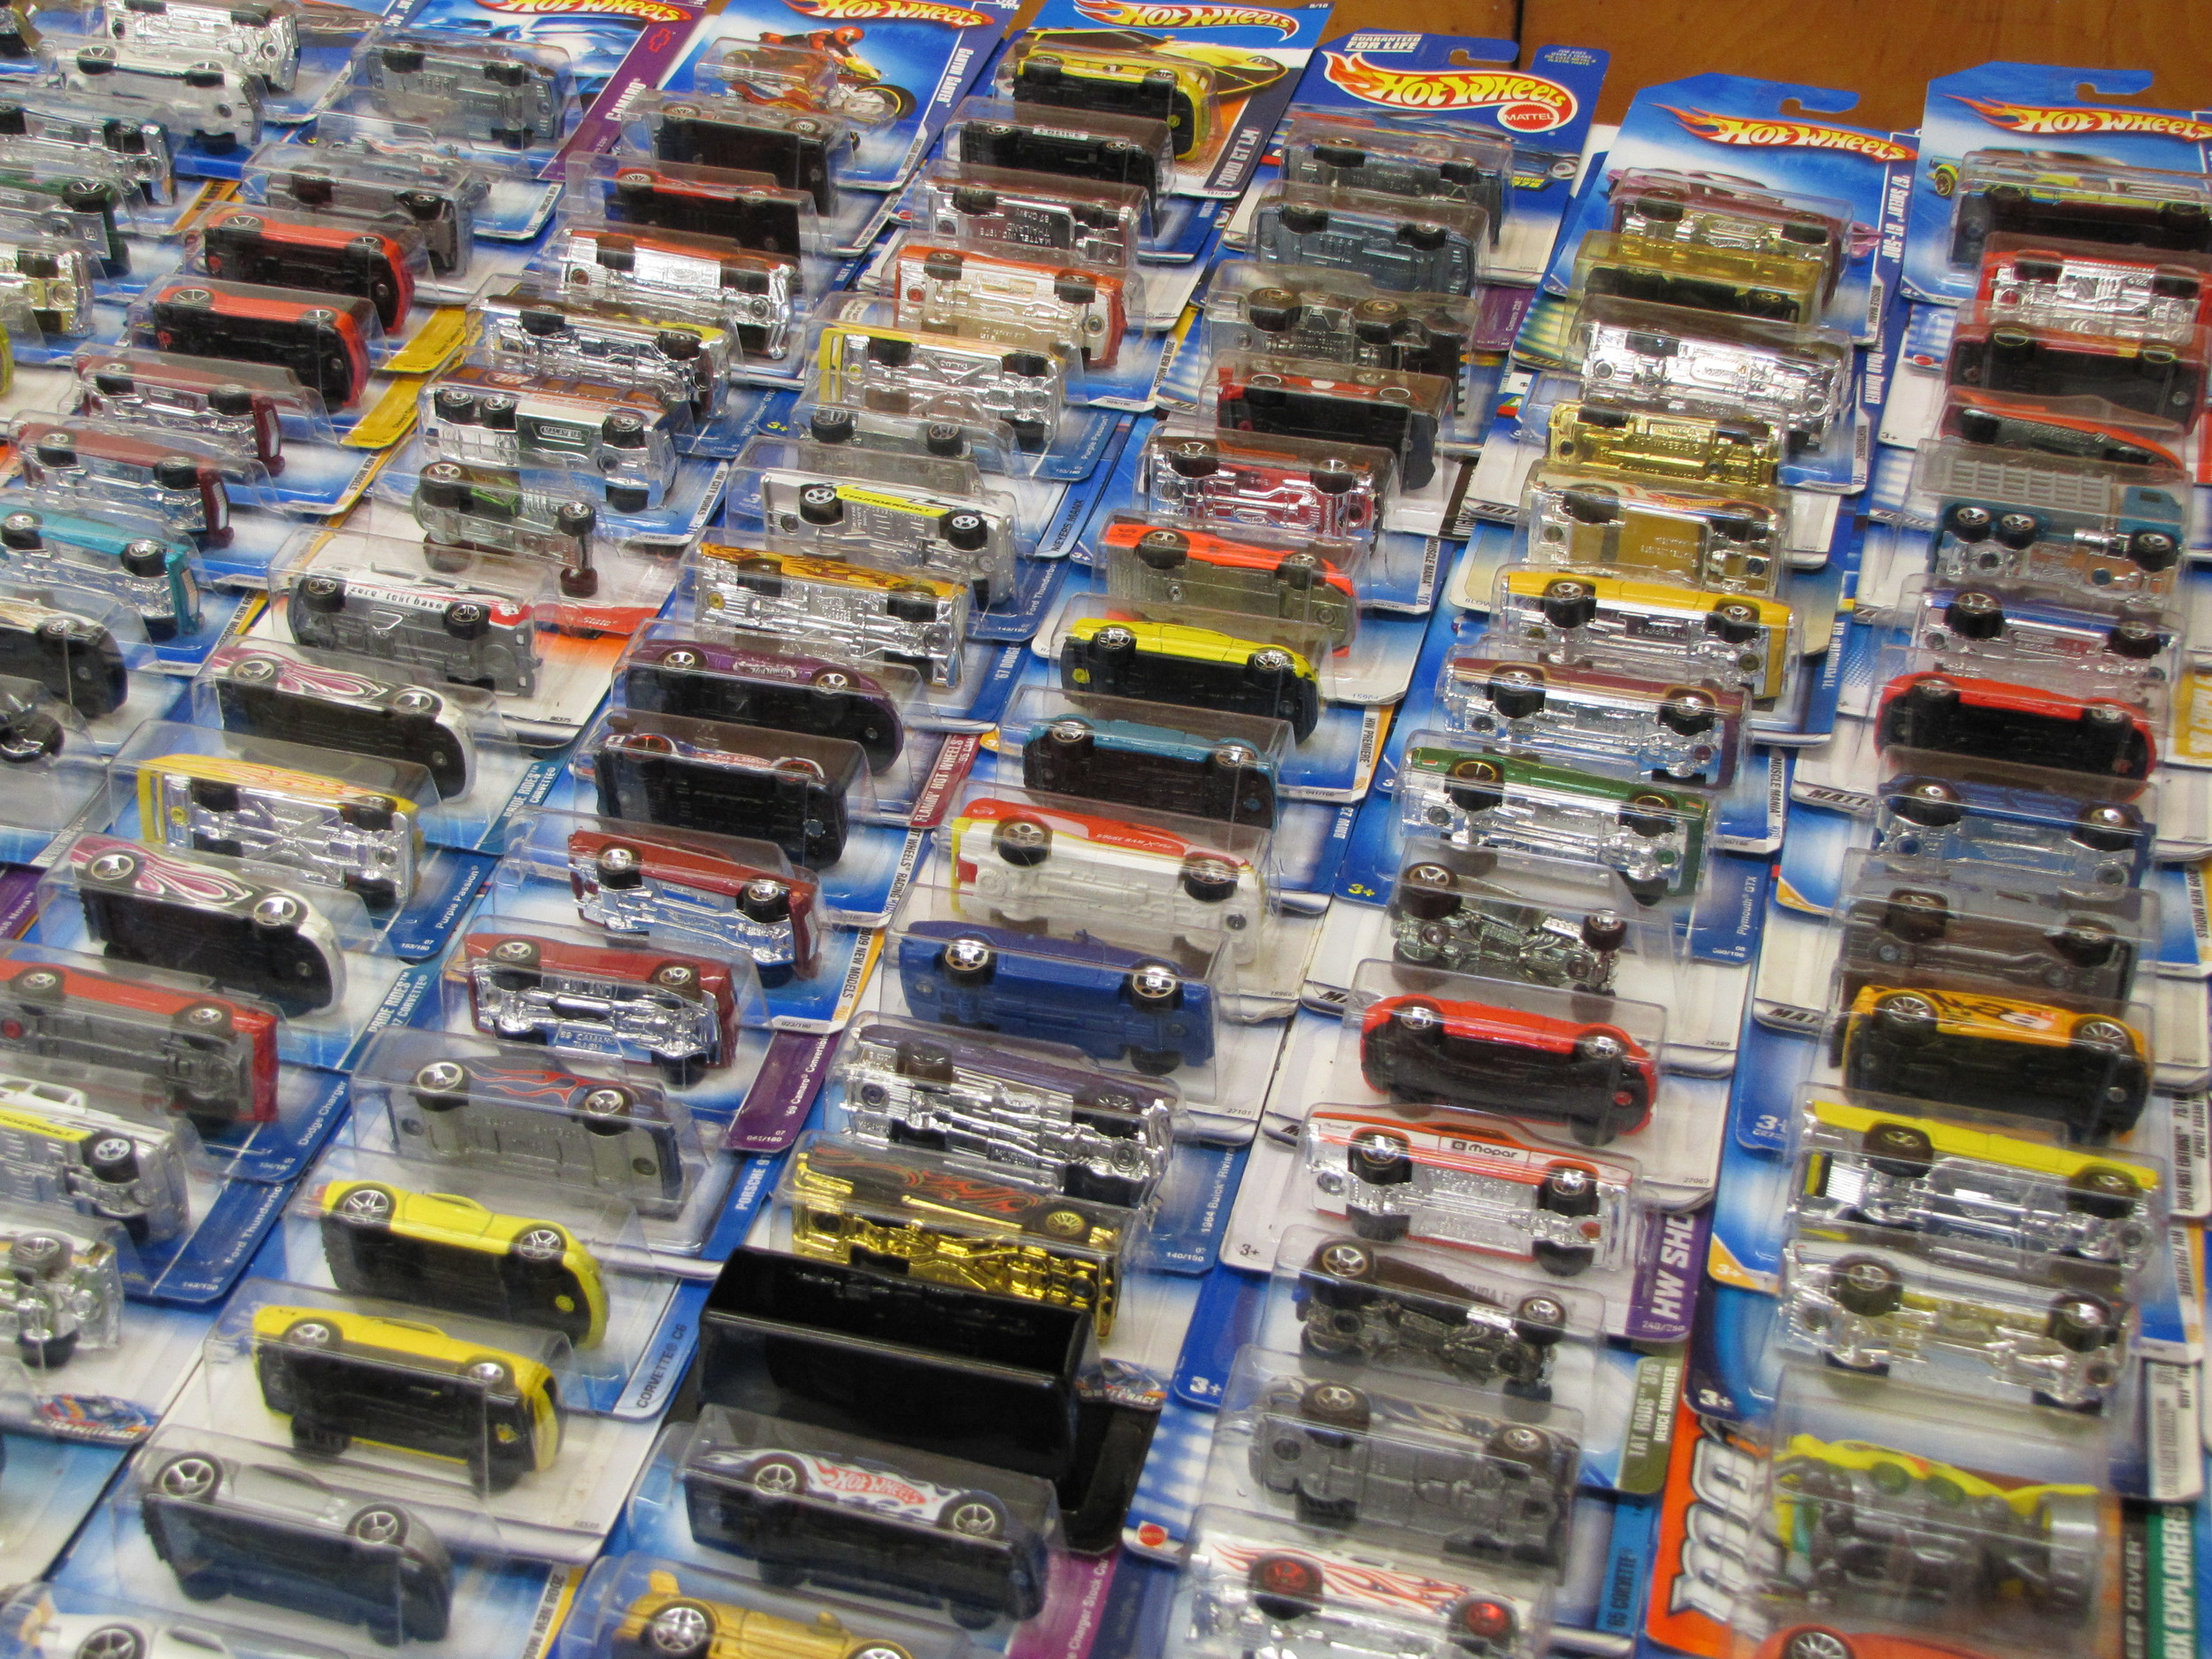 Thousands upon thousands of toy cars flooded the Cartersville Civic Center Saturday as part of the North Georgia Dixie Diecast and Toy Collectibles show.